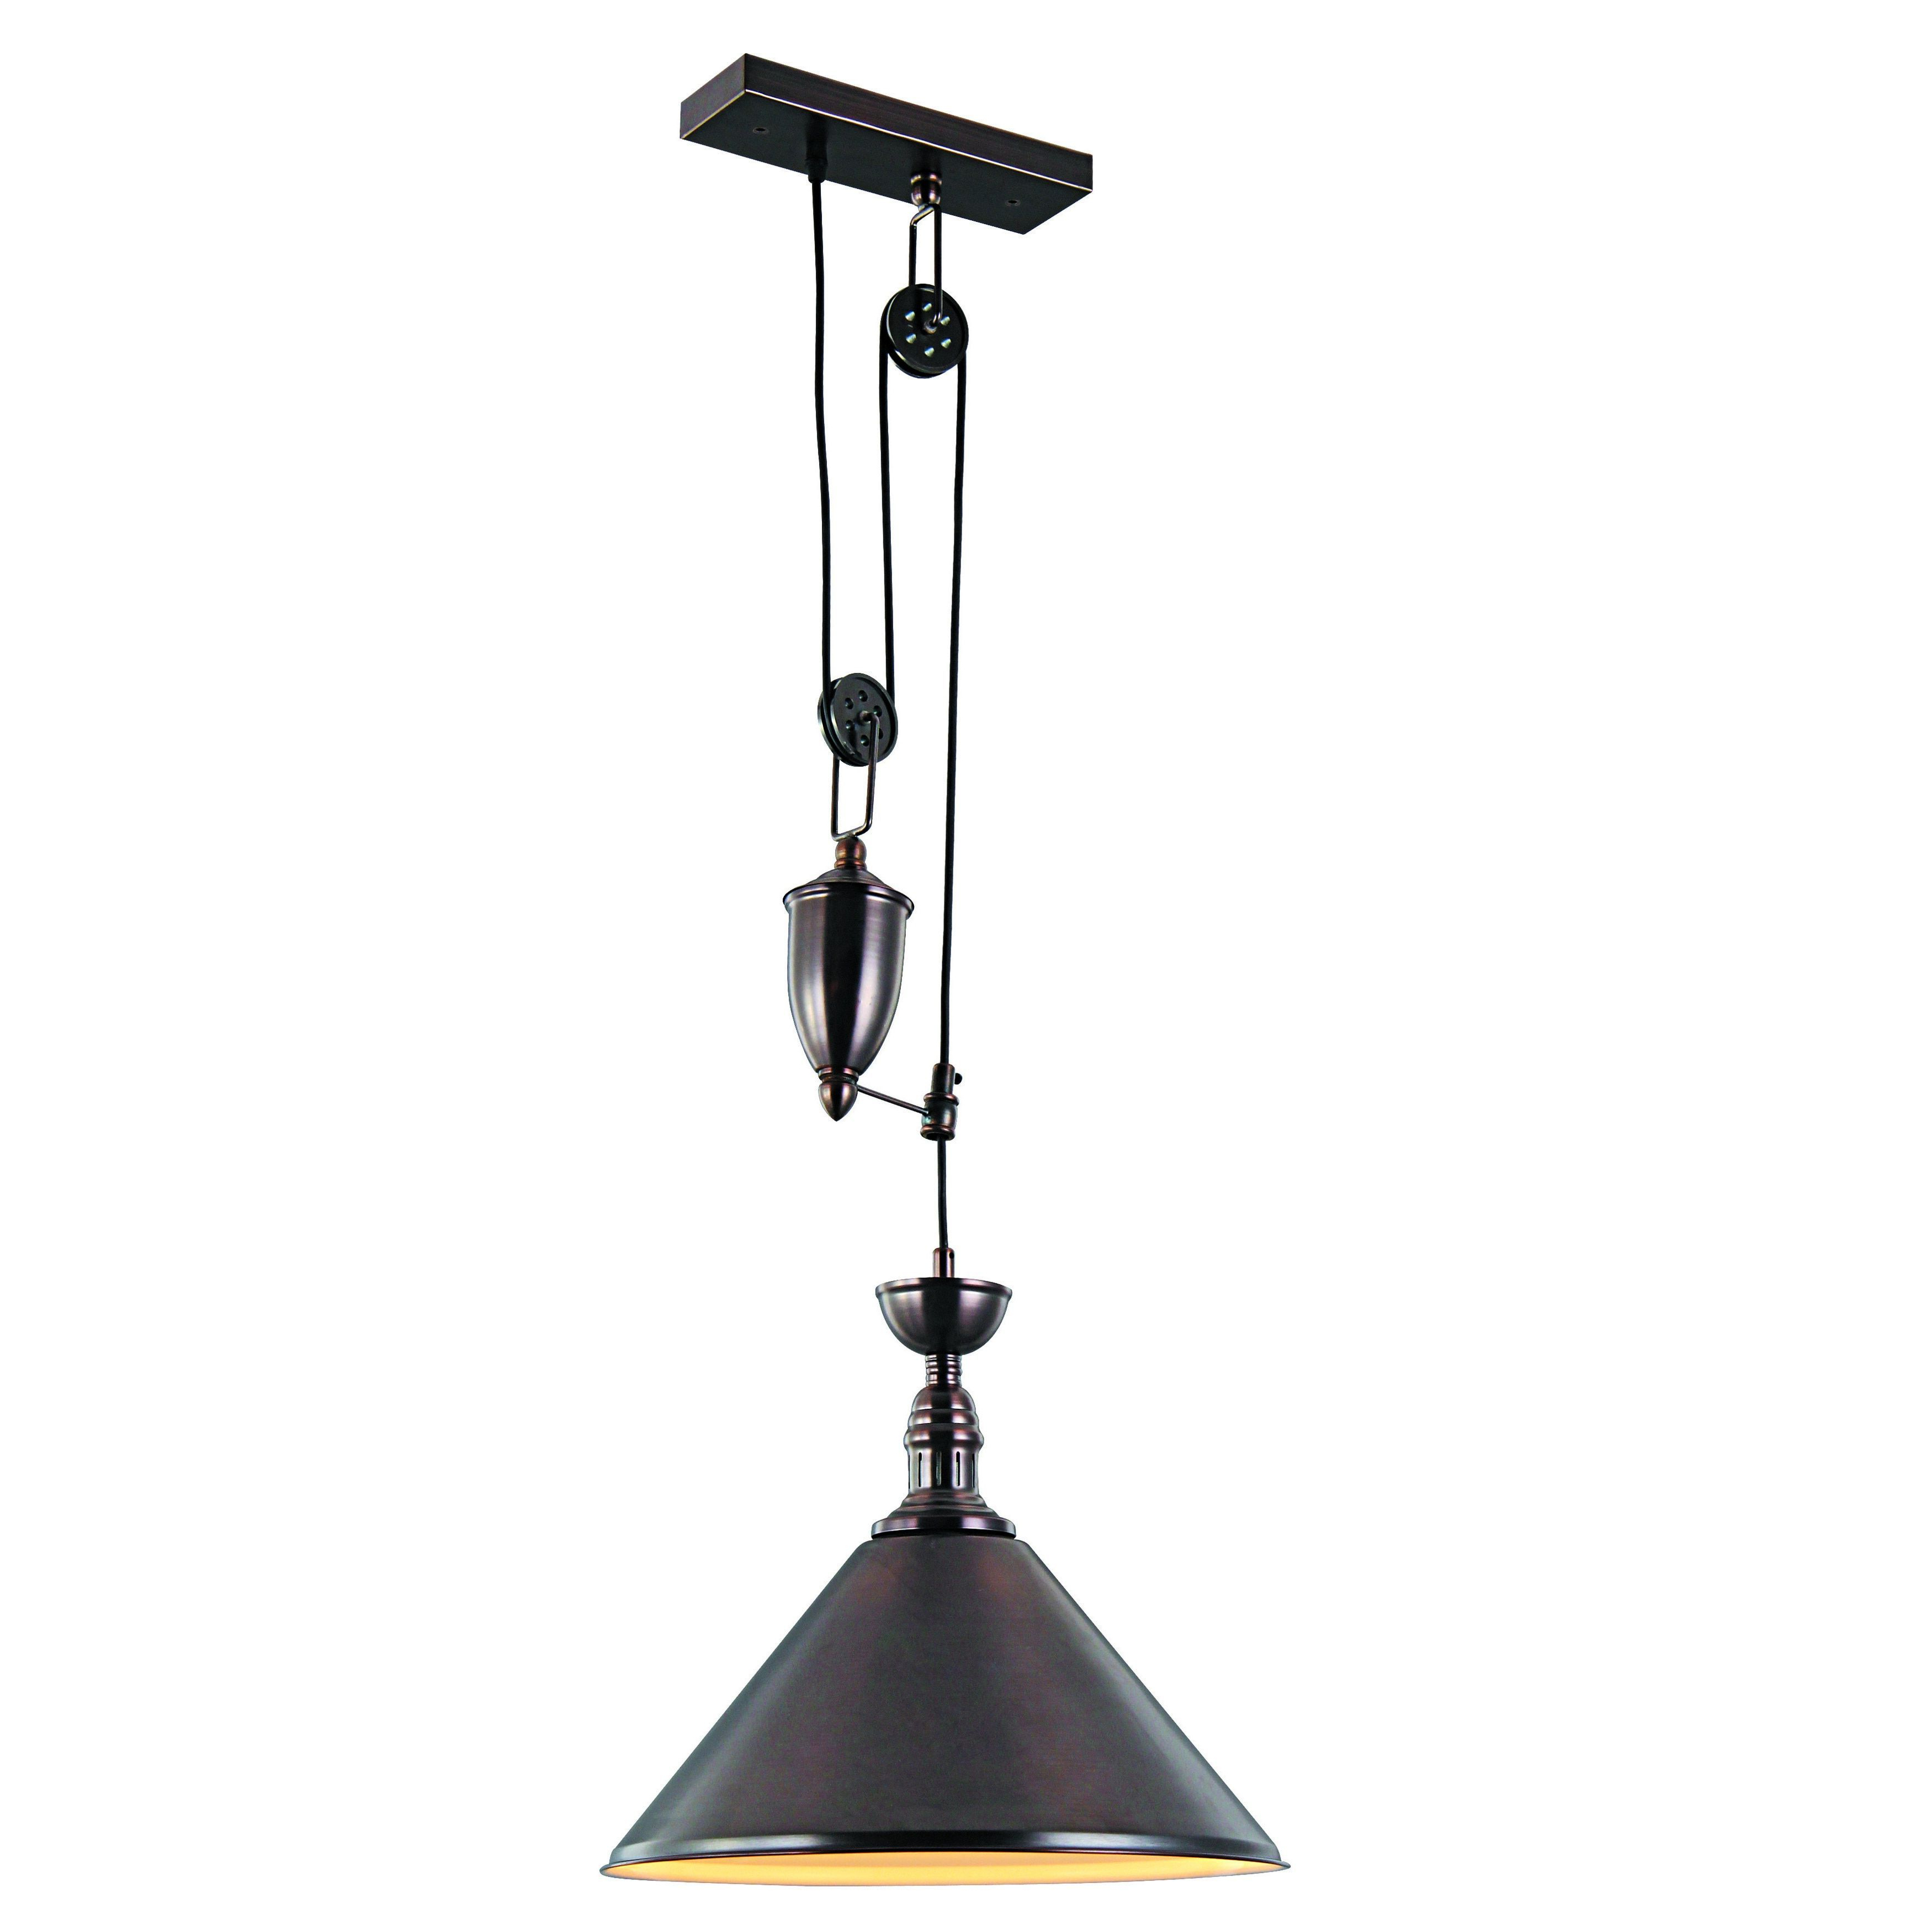 Euclid 2 Light Kitchen Island Linear Pendants For Best And Newest Elegant Lighting Industrial Collection Pendant Lamp With (View 9 of 20)